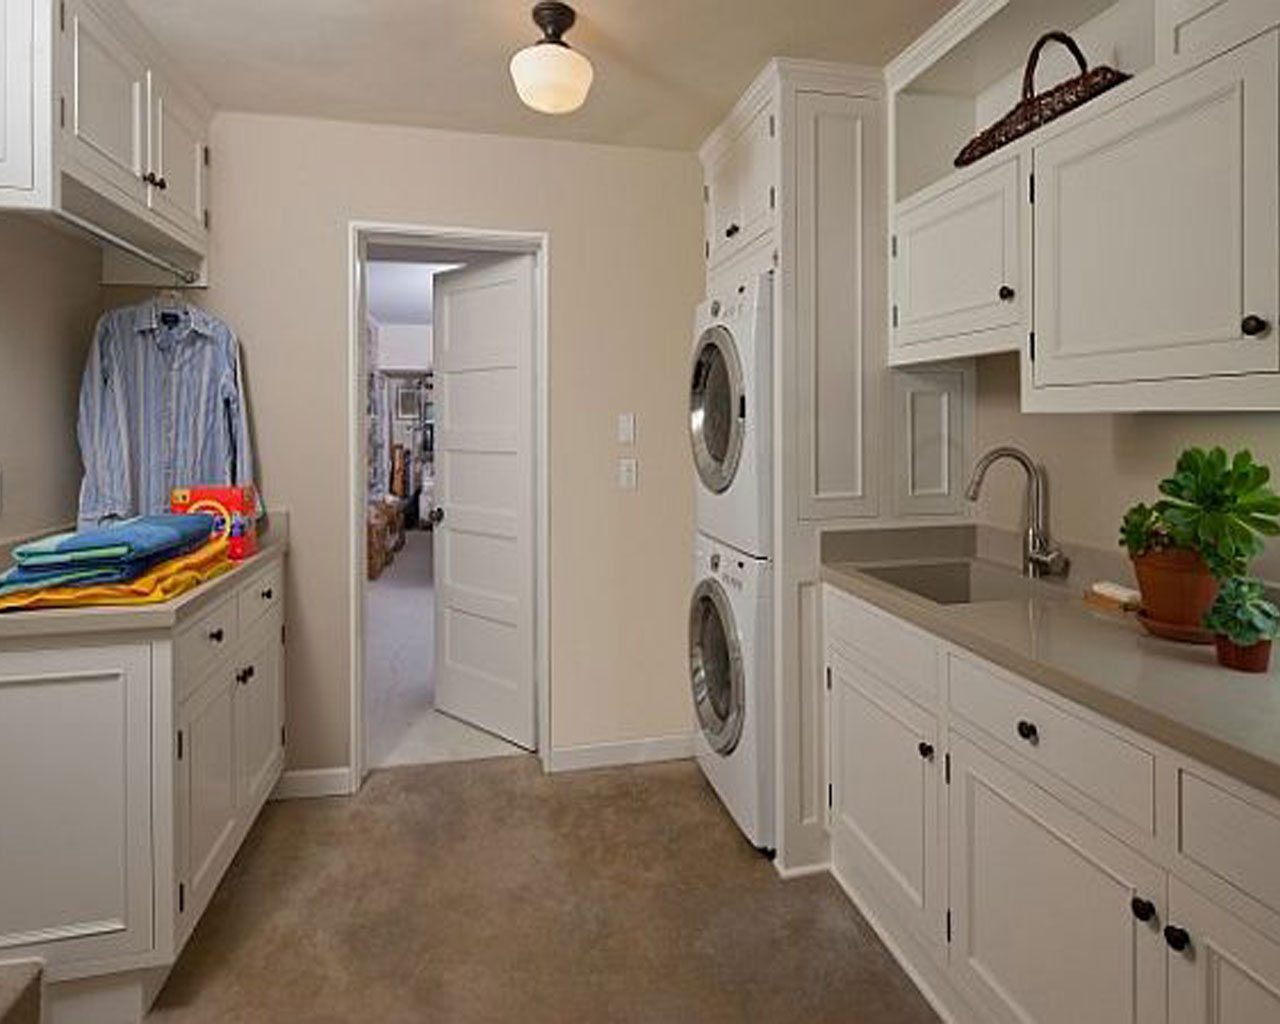 Place Stacked Washing Machines in High Shelf for Small Laundry Room Ideas with White Counter